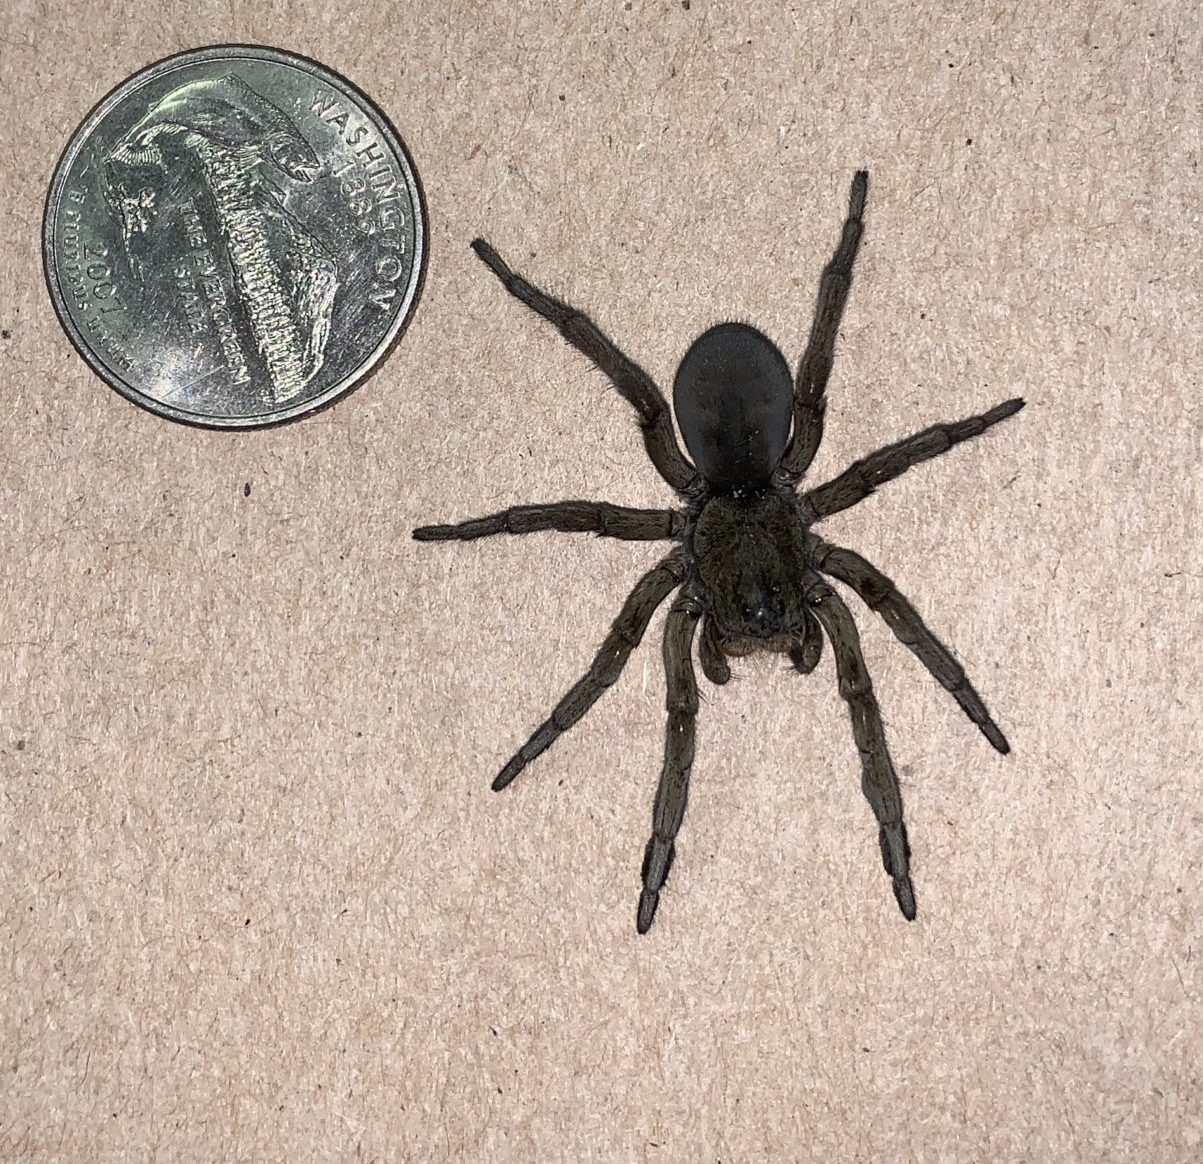 Picture of Geolycosa missouriensis - Female - Dorsal